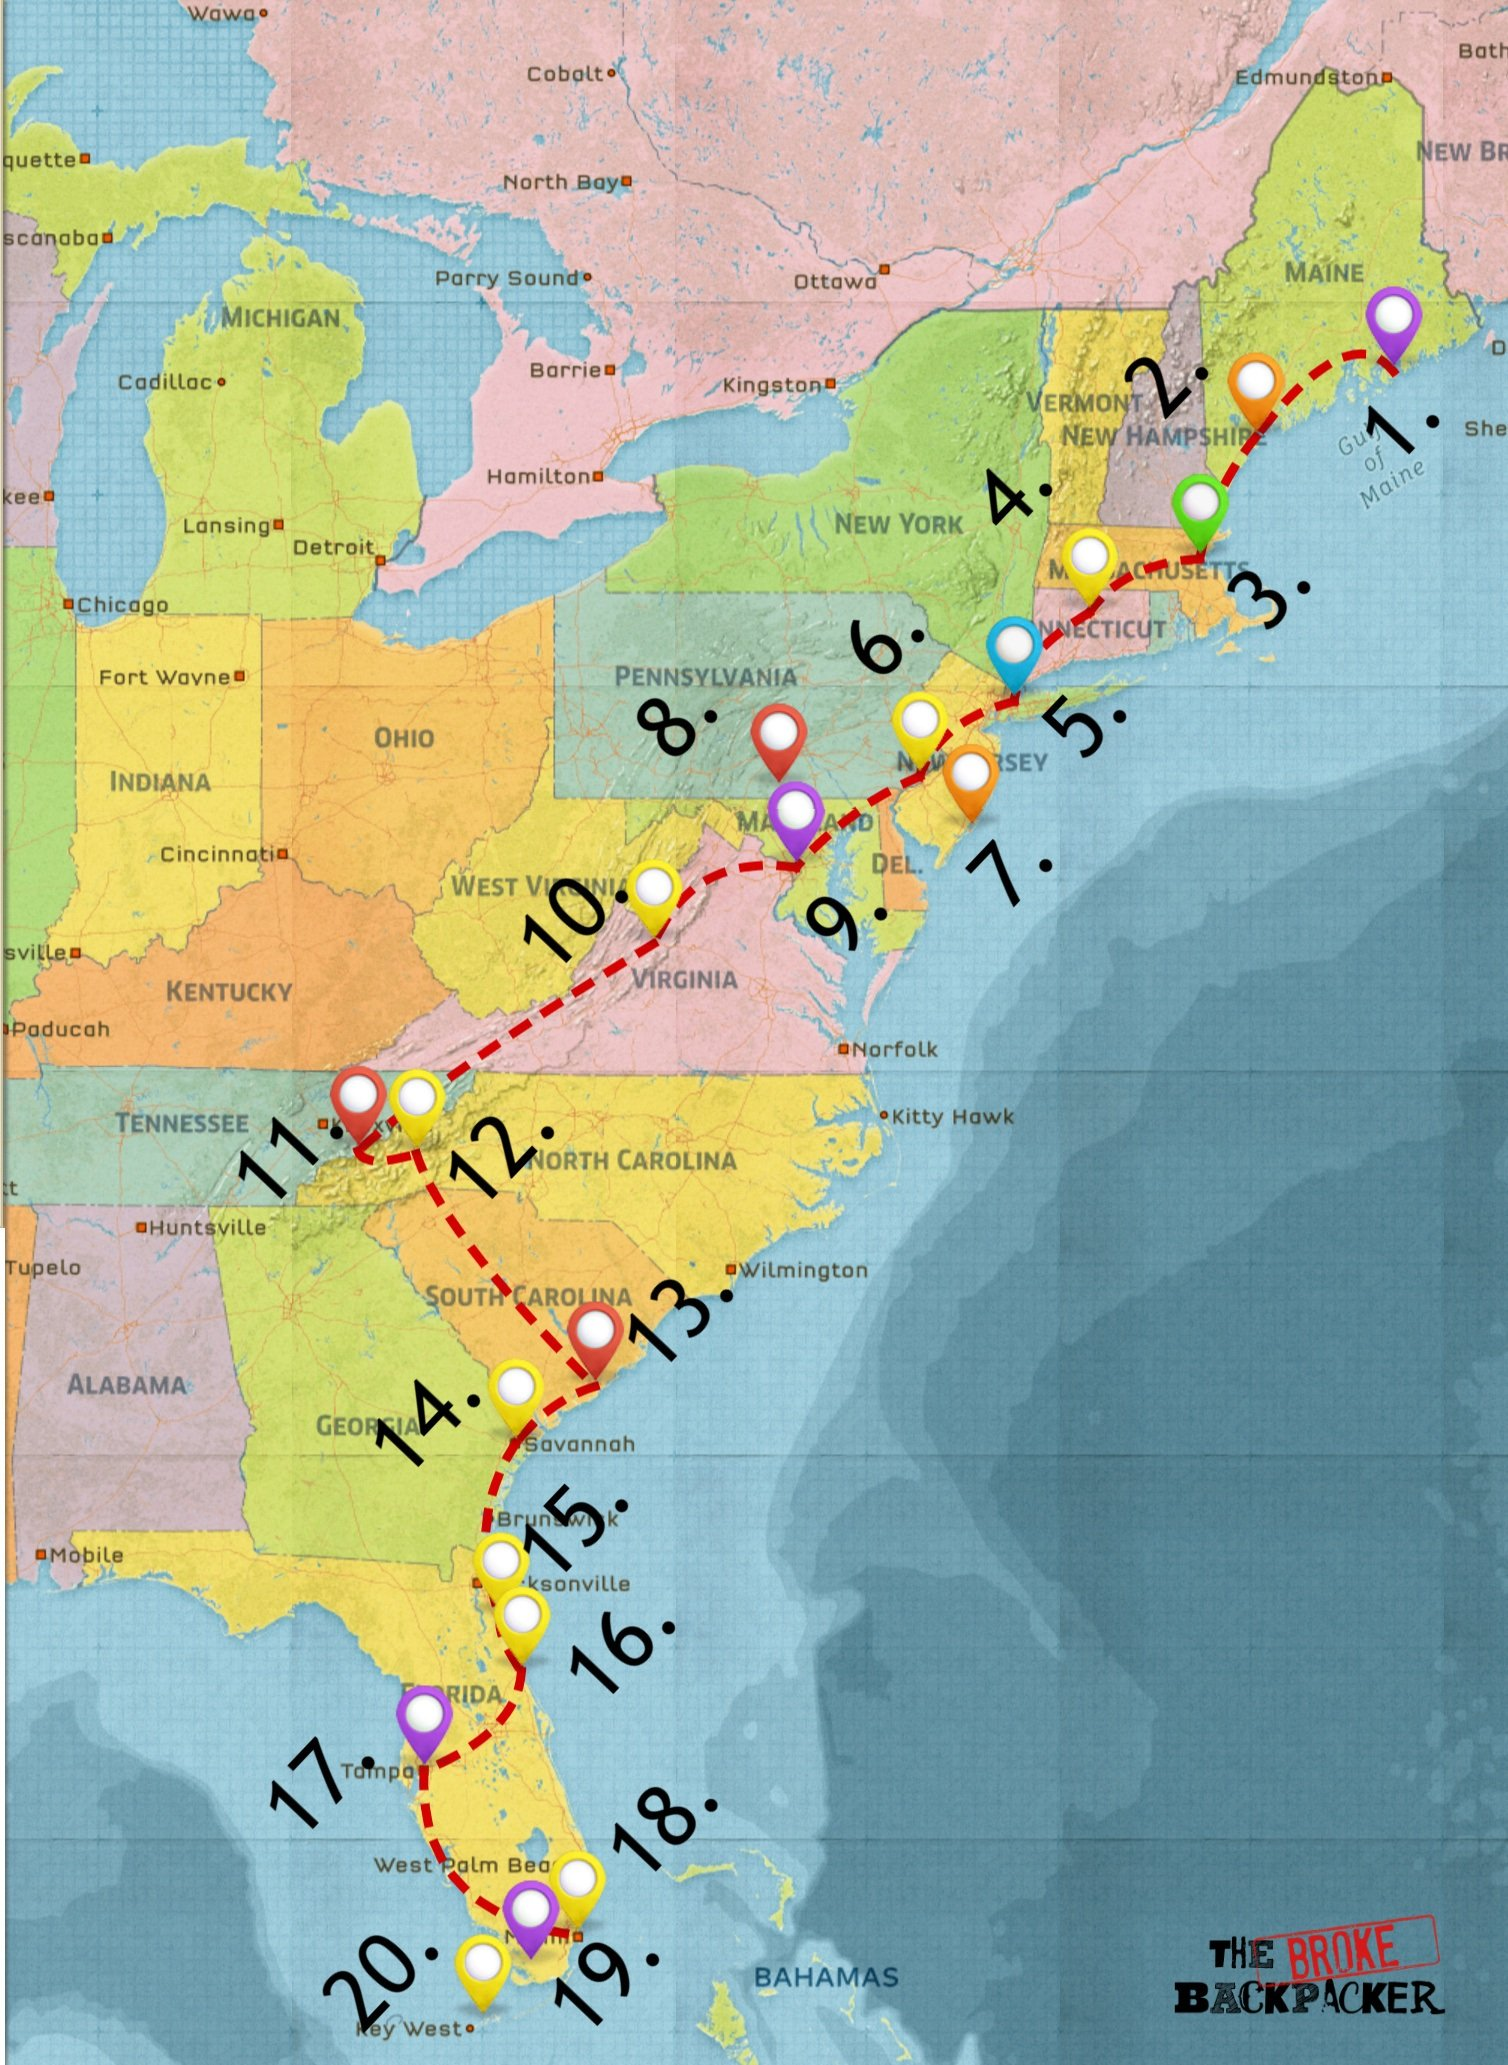 east coast road trip map - driving itinerary #3